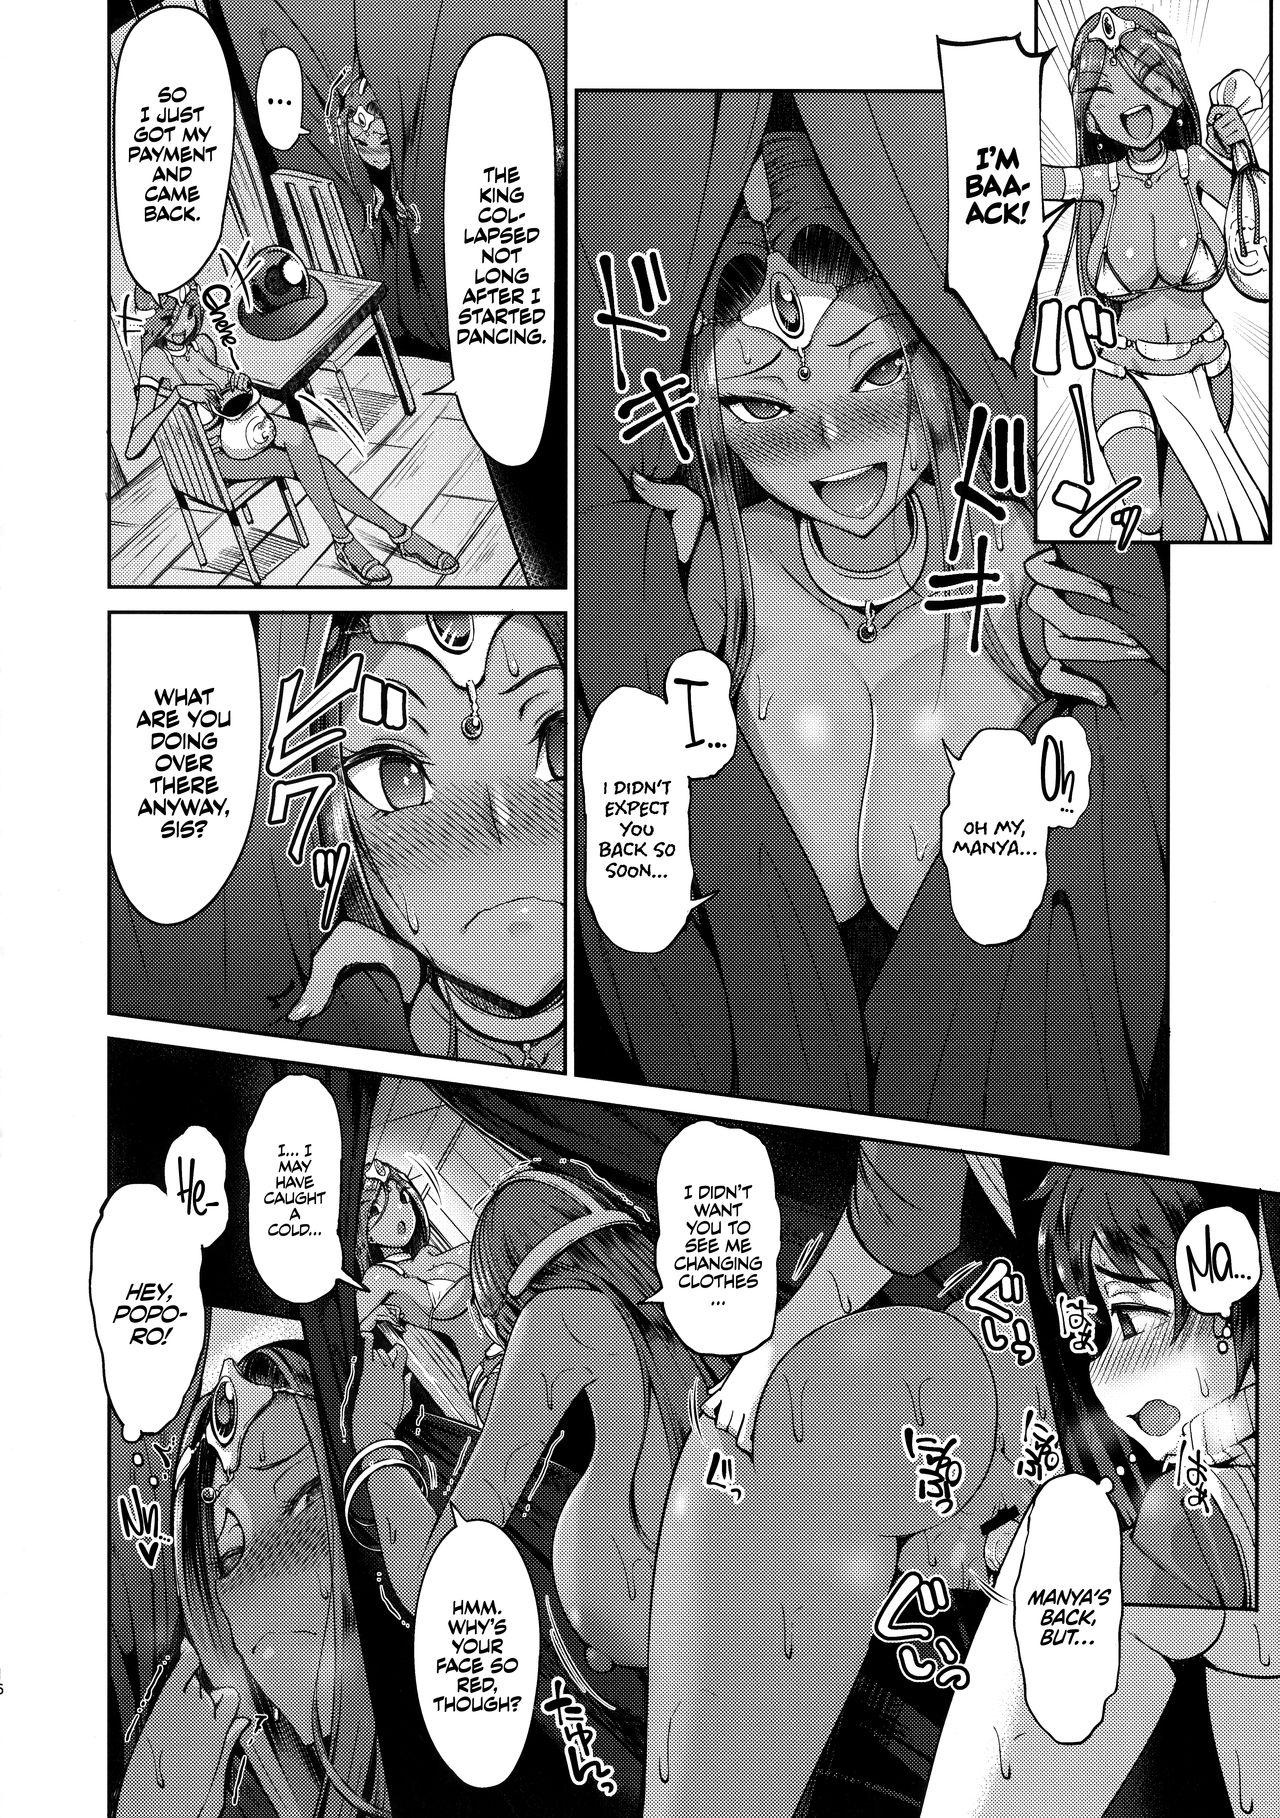 (C97) [Arearee] Manya-san to Minea-san to Matamata Are Suru Hon | Yet Another Manya And Minea Doing You-Know-What Book (Dragon Quest IV) [English] =TLL + mrwayne= 14